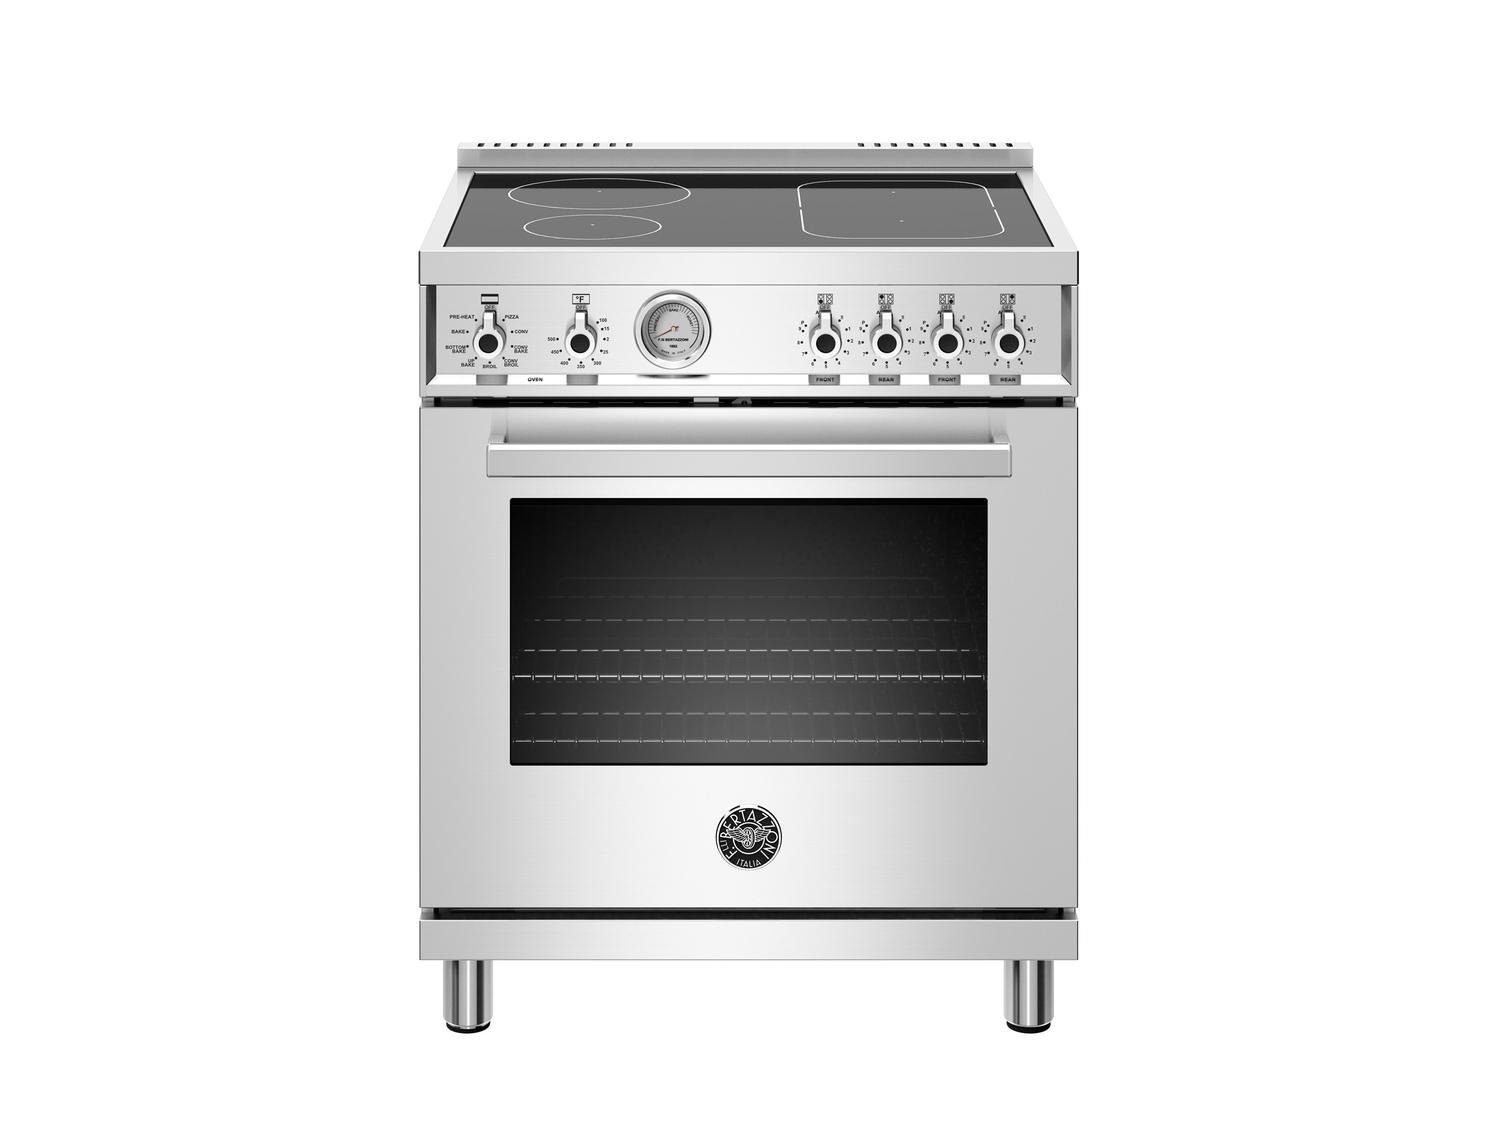 Bertazzoni30 Inch Induction Range, 4 Heating Zones, Electric Oven Stainless Steel